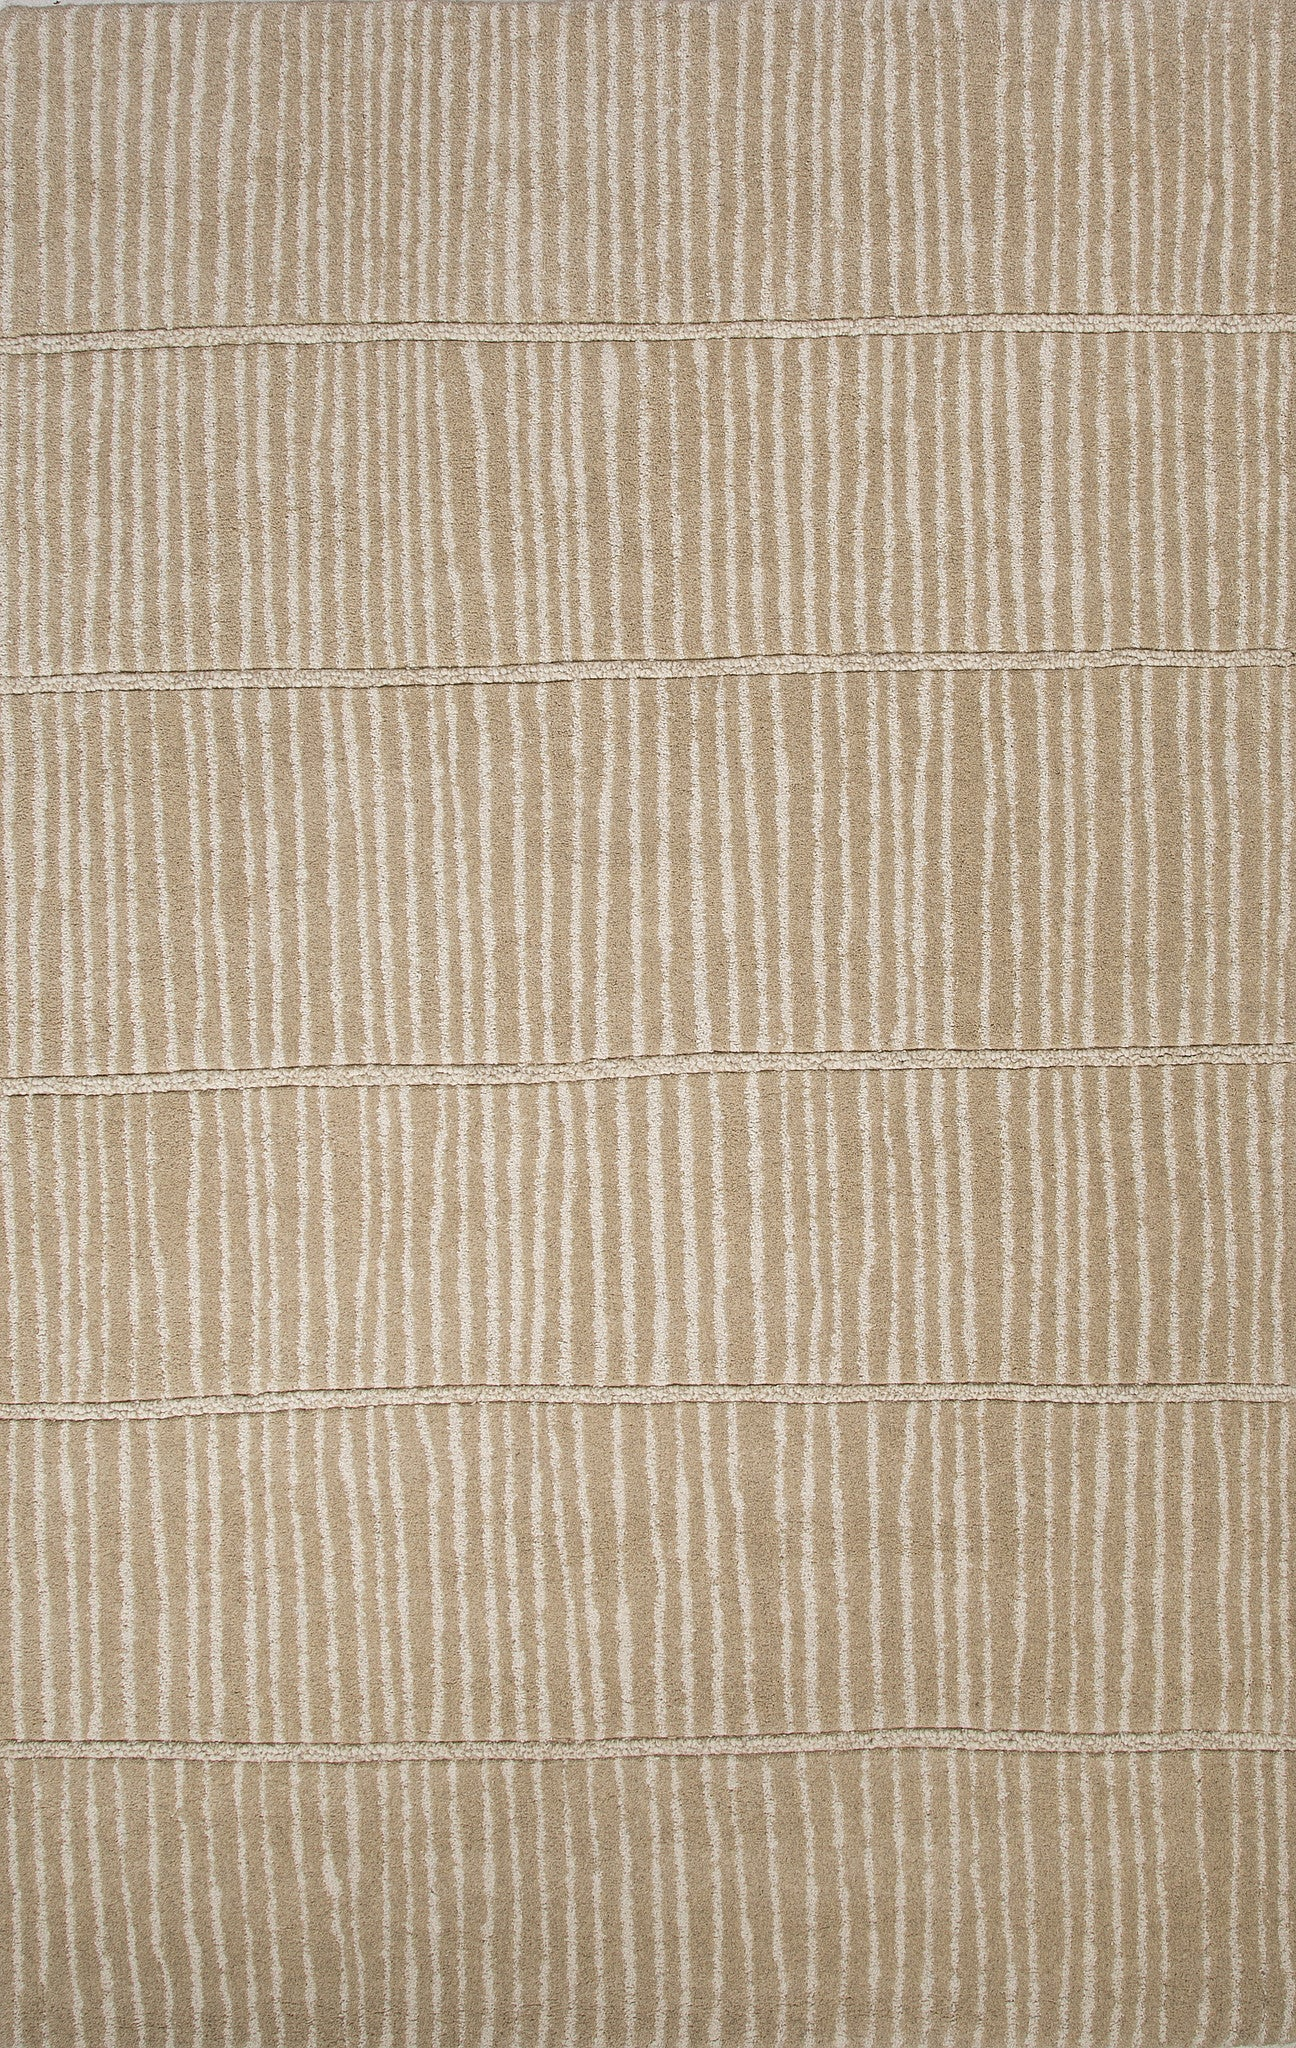 Jaipur Rugs Modern Stripe Pattern Tan Wool Area Rug Bri14